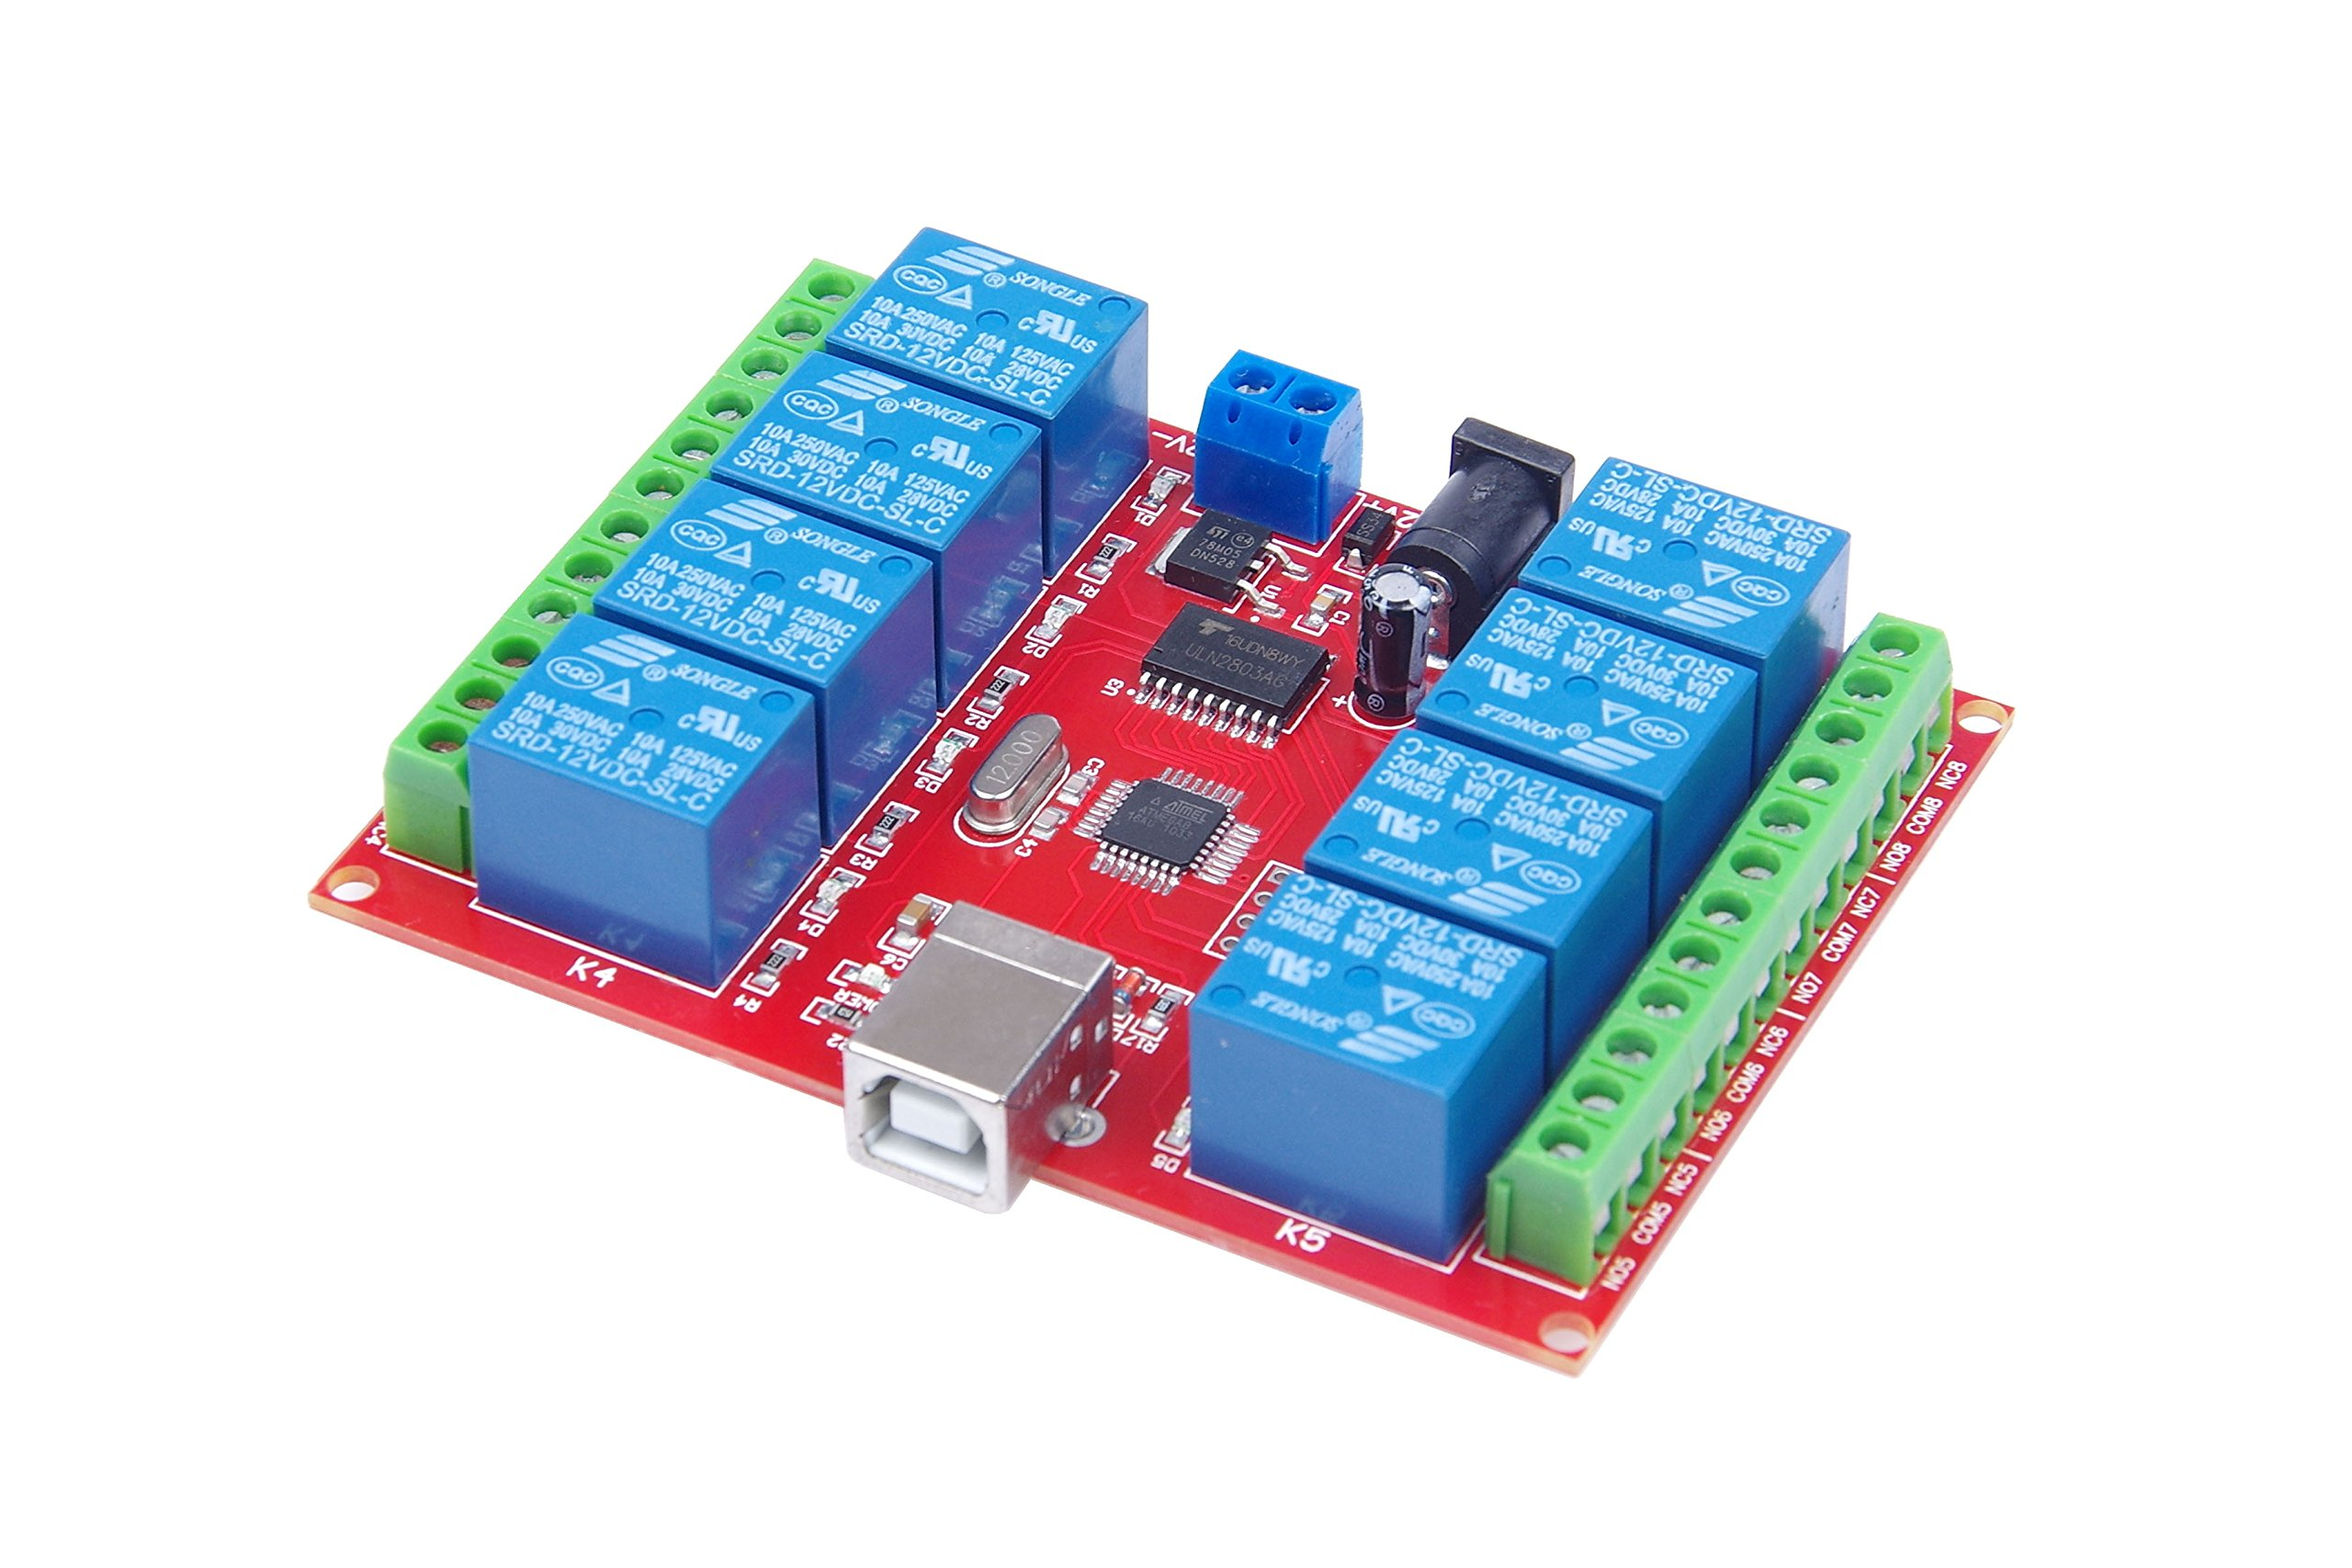 KNACRO 12v 8 Channel USB Relay Module Programmable Computer Control omputer USB control switch/driver/PC Intelligent Controller